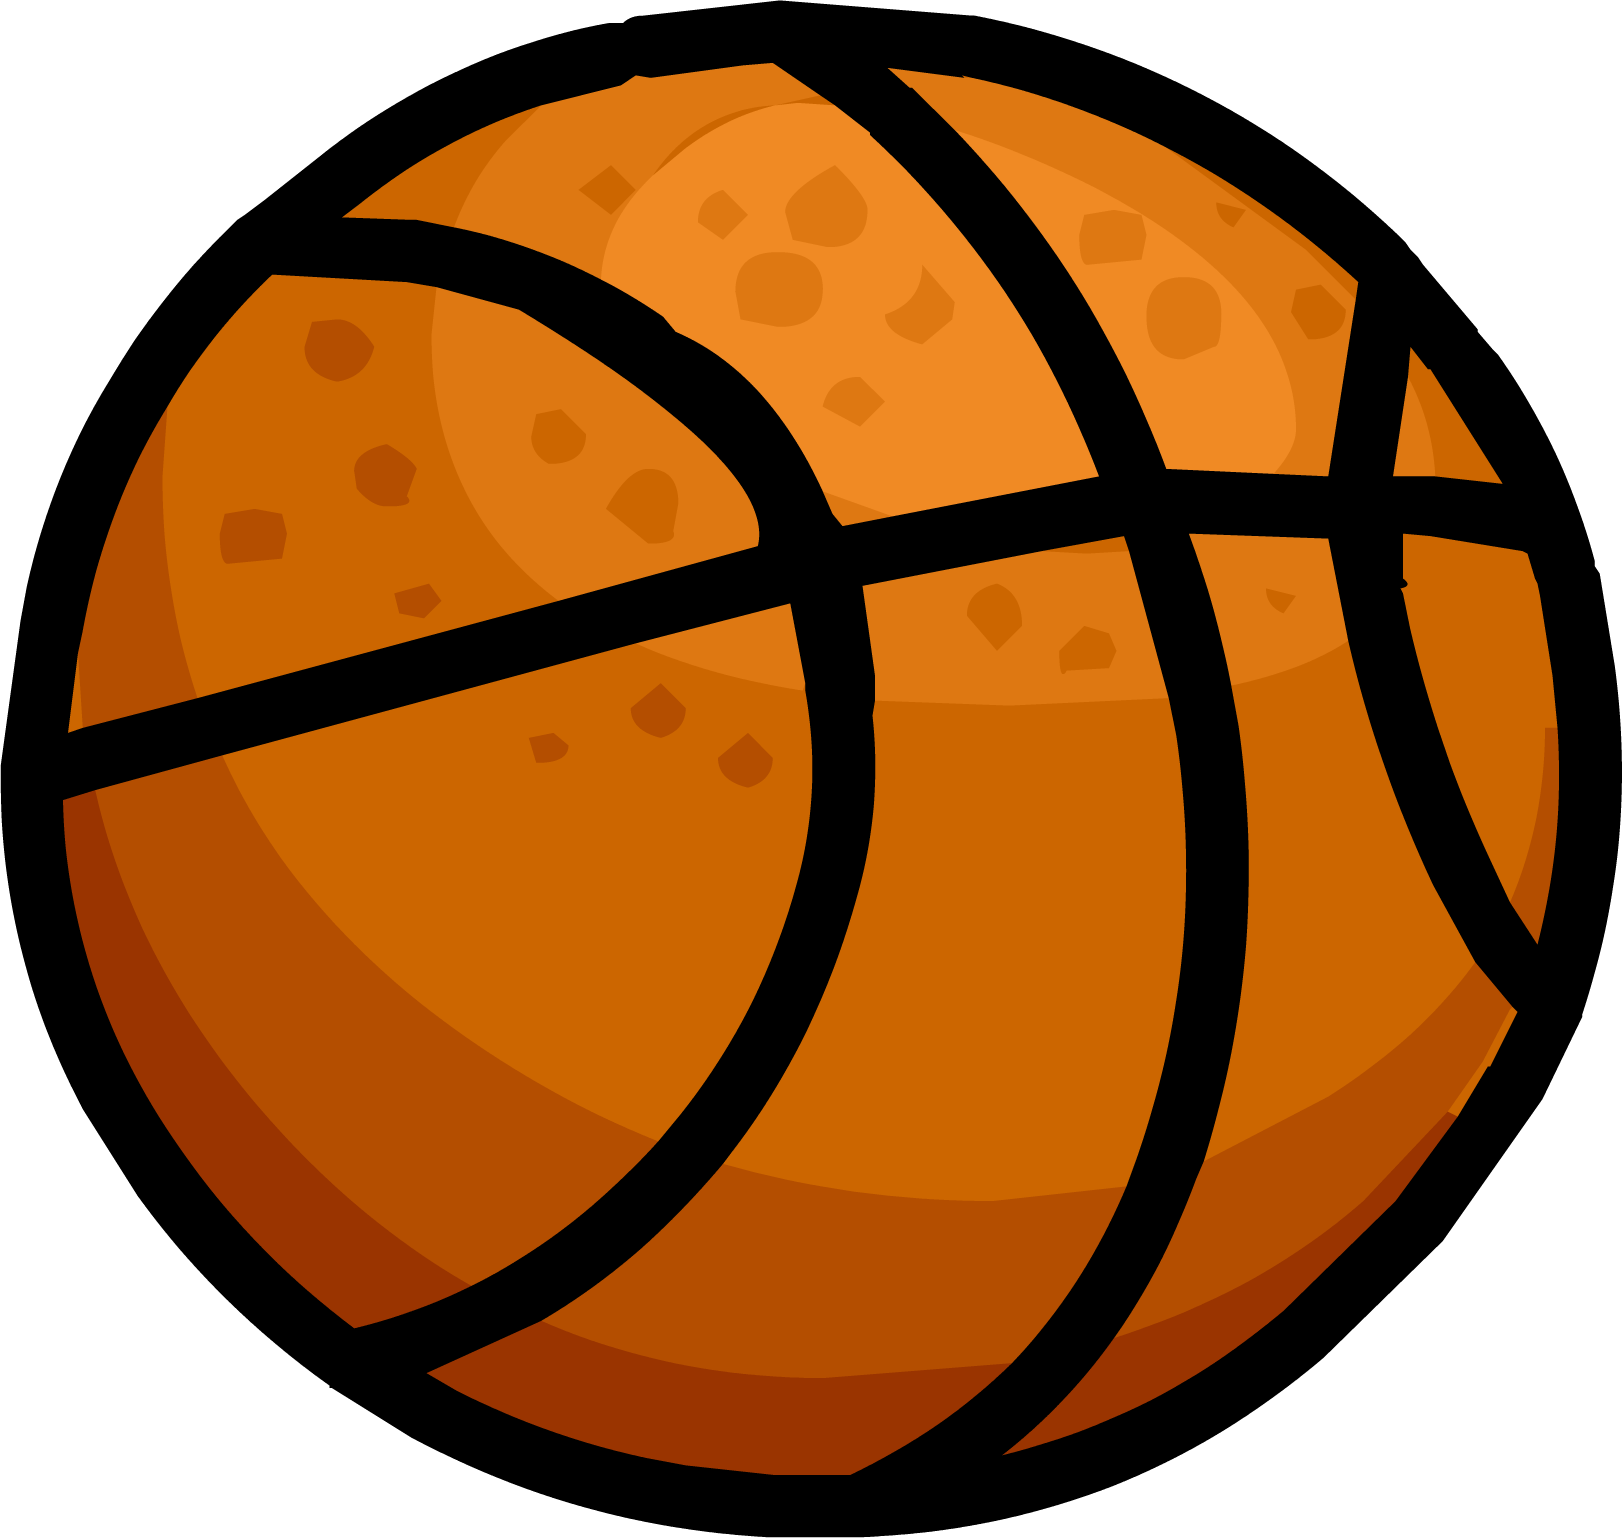 Basketball with form clipart clip free Basketball | Club Penguin Wiki | FANDOM powered by Wikia clip free